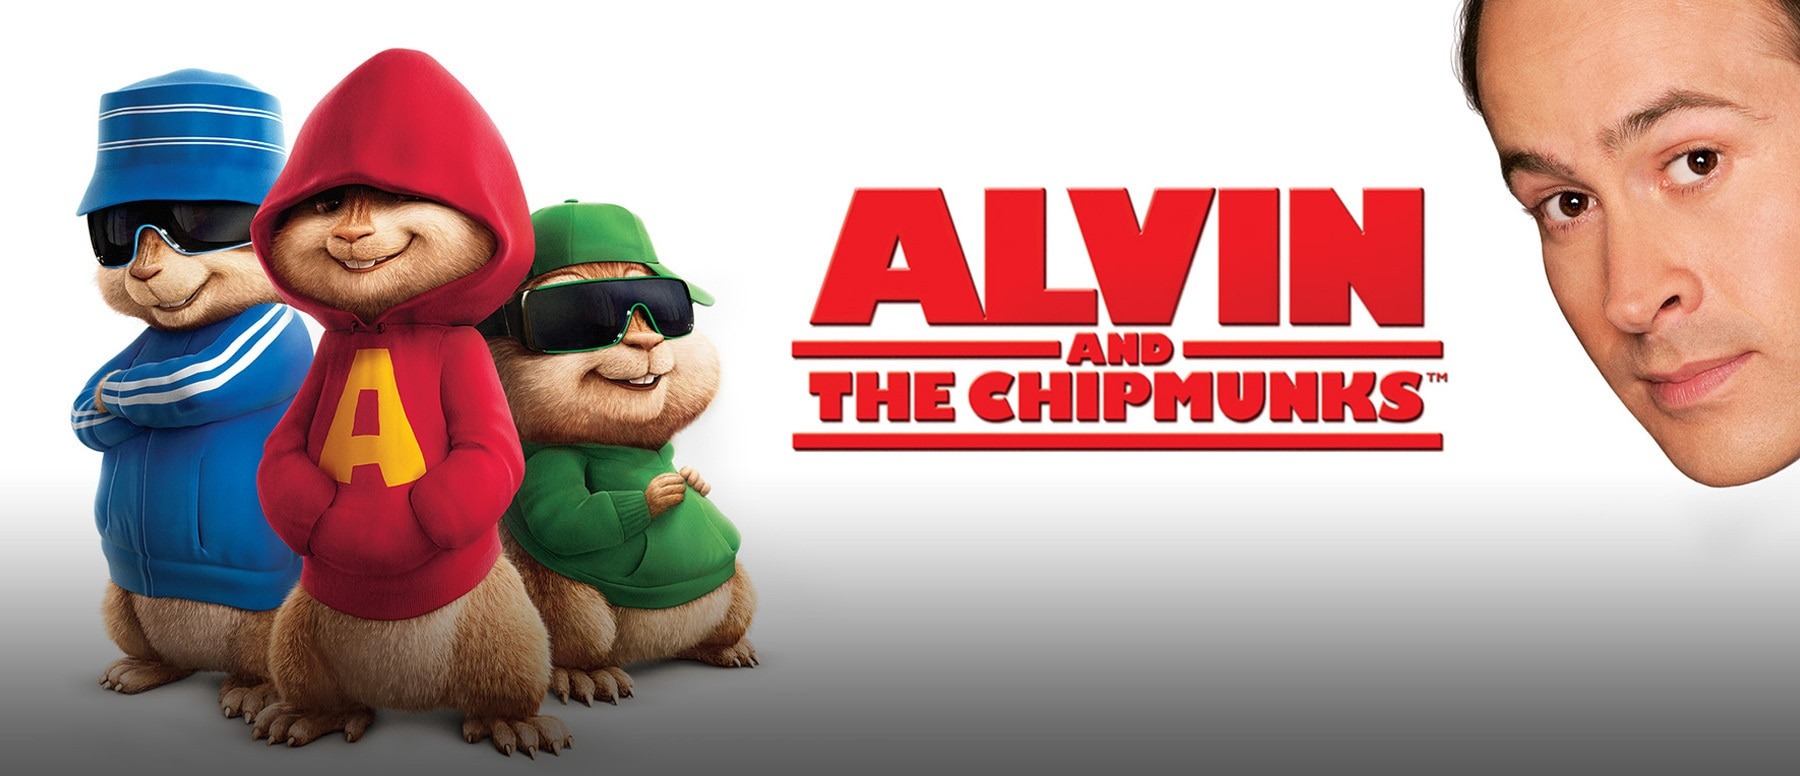 Alvin and the Chipmunks Hero